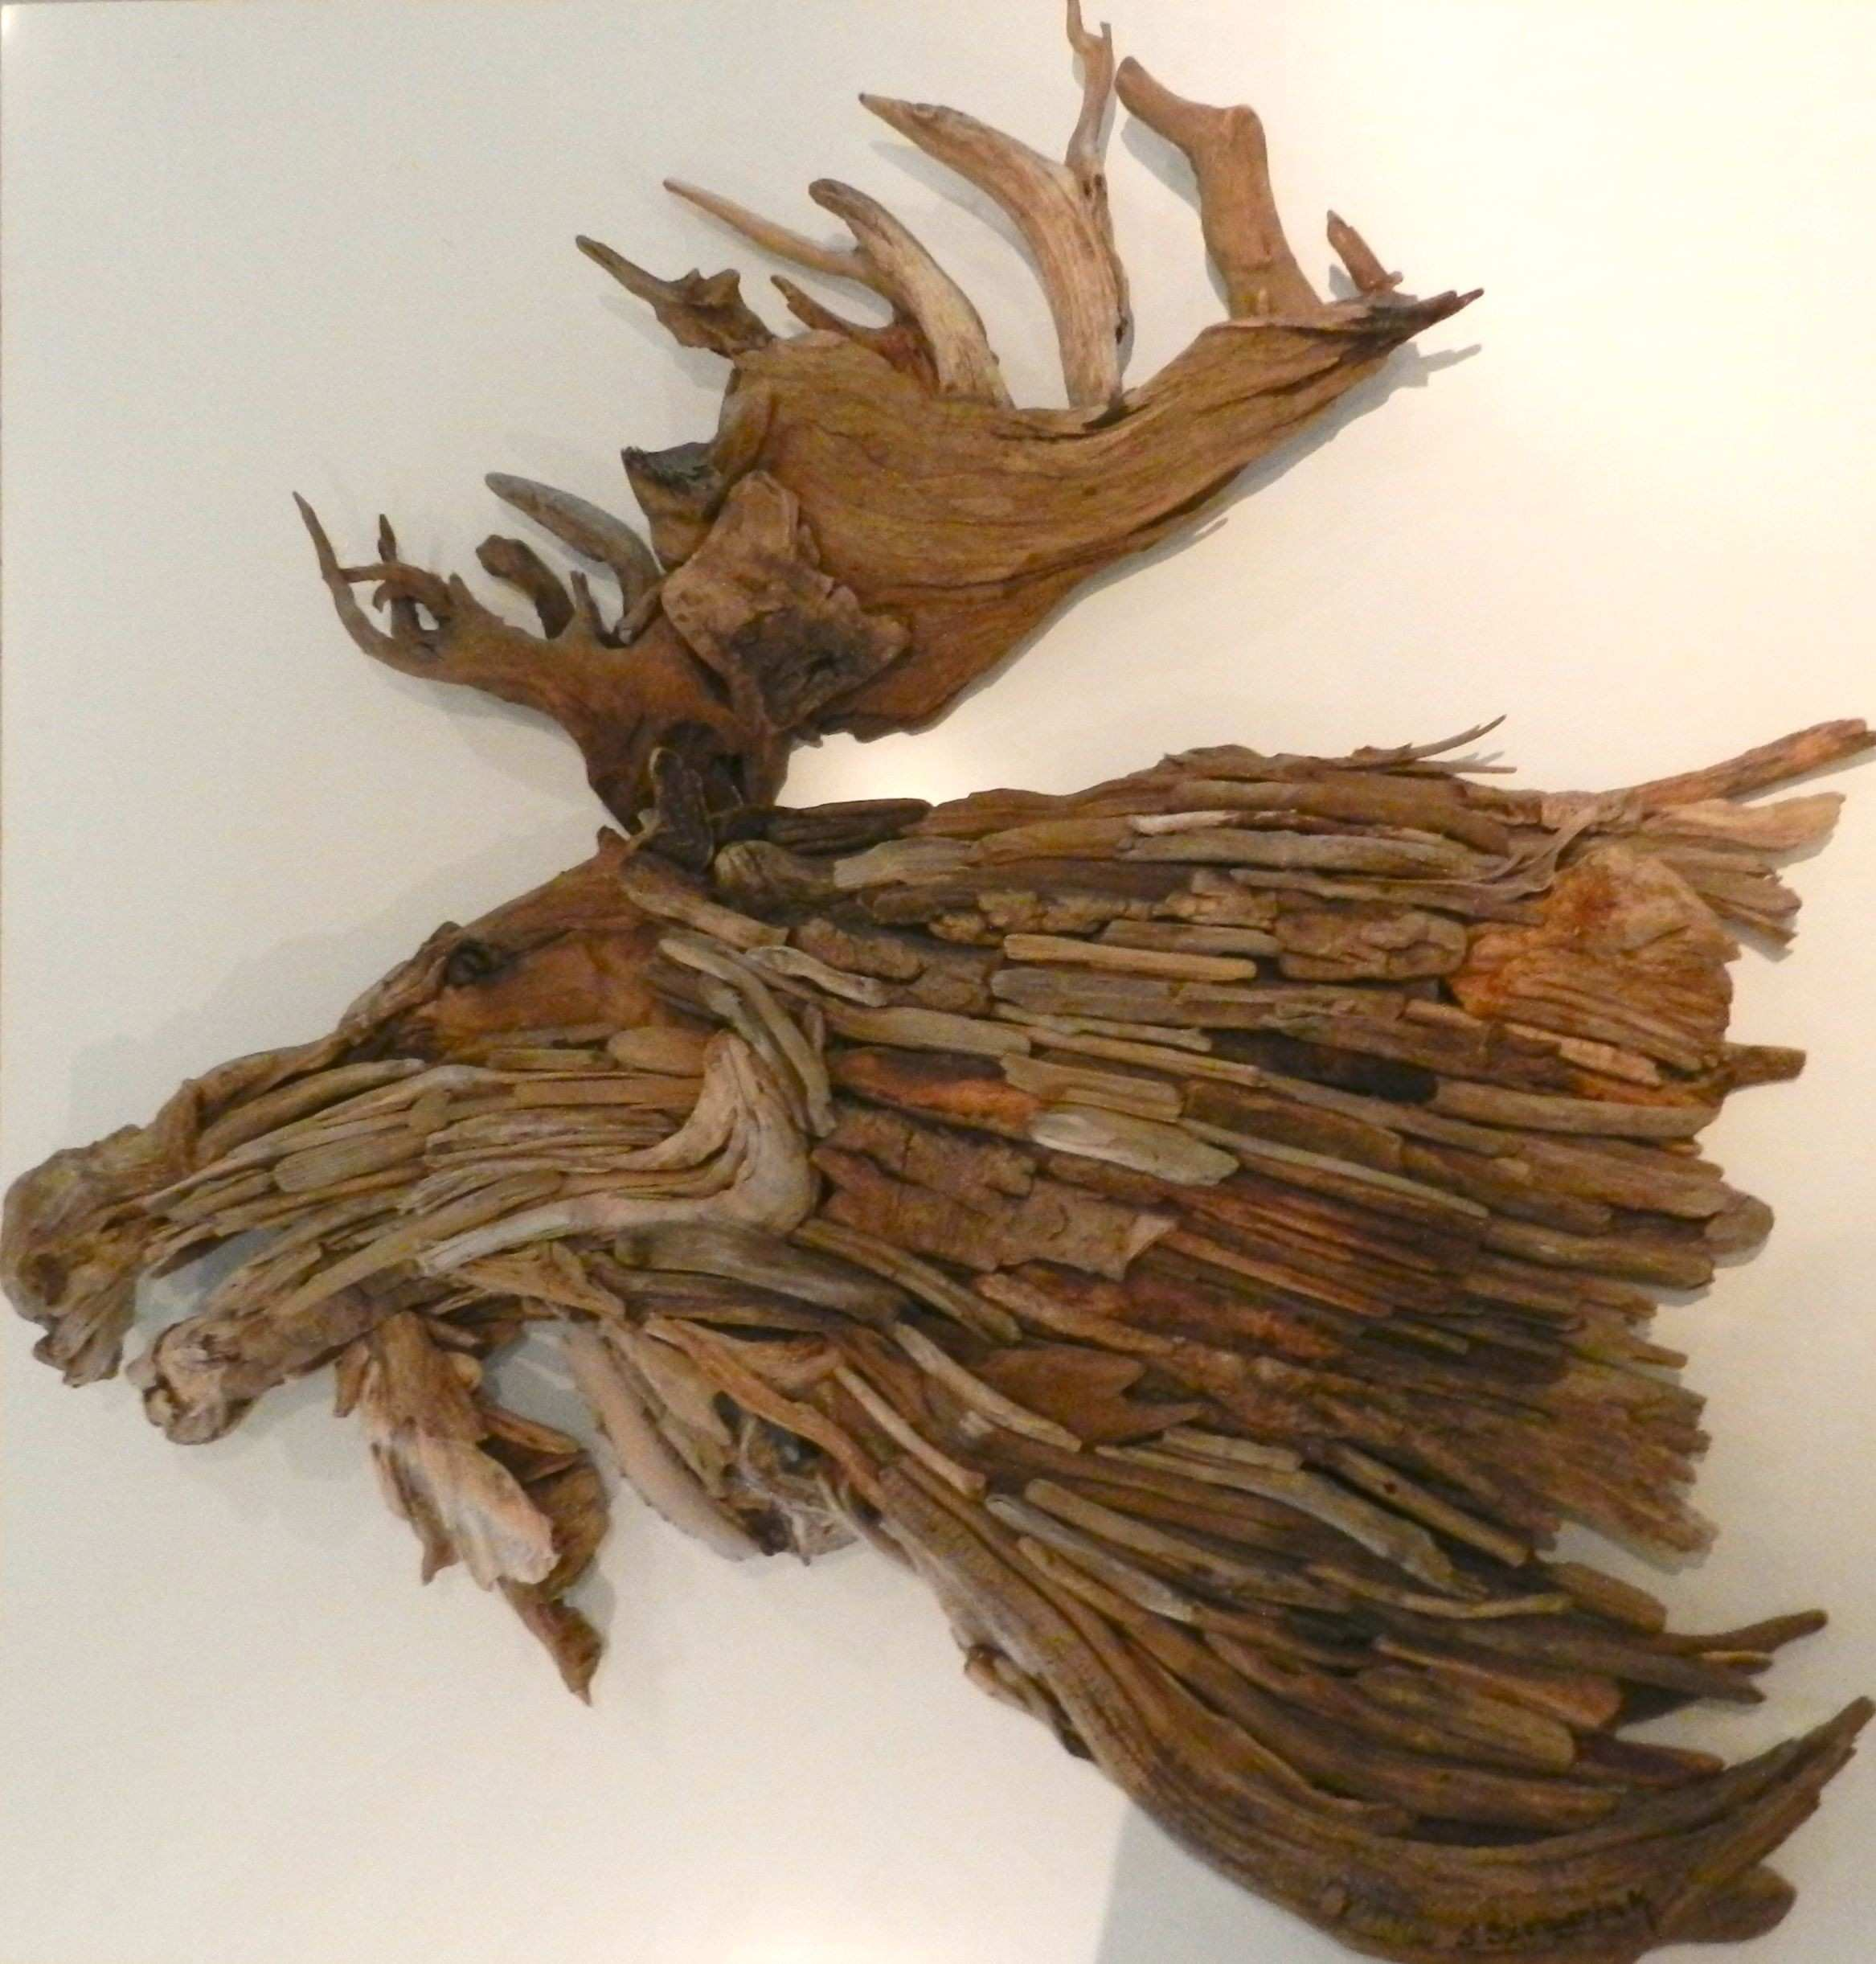 Driftwood Moose Head wall hanging by artist Jennifer Szczyrbak